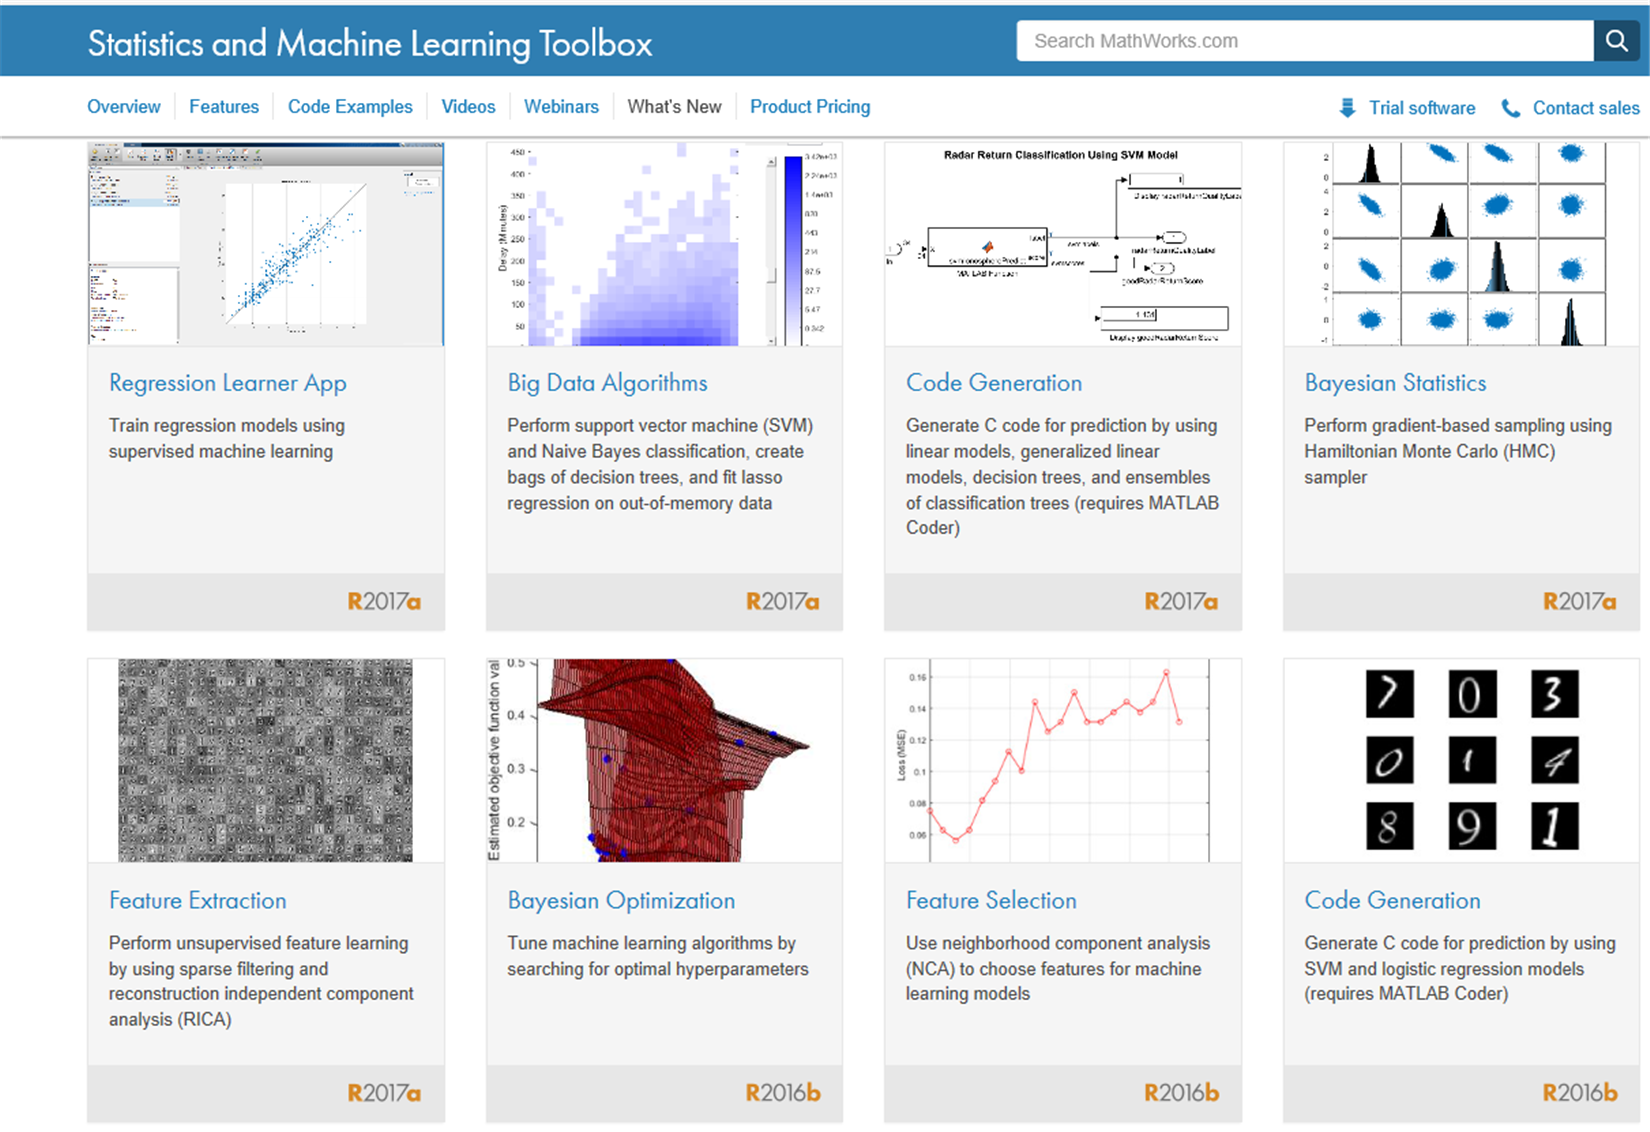 Statistics and Machine Learning Toolbox - MATLAB for Machine Learning